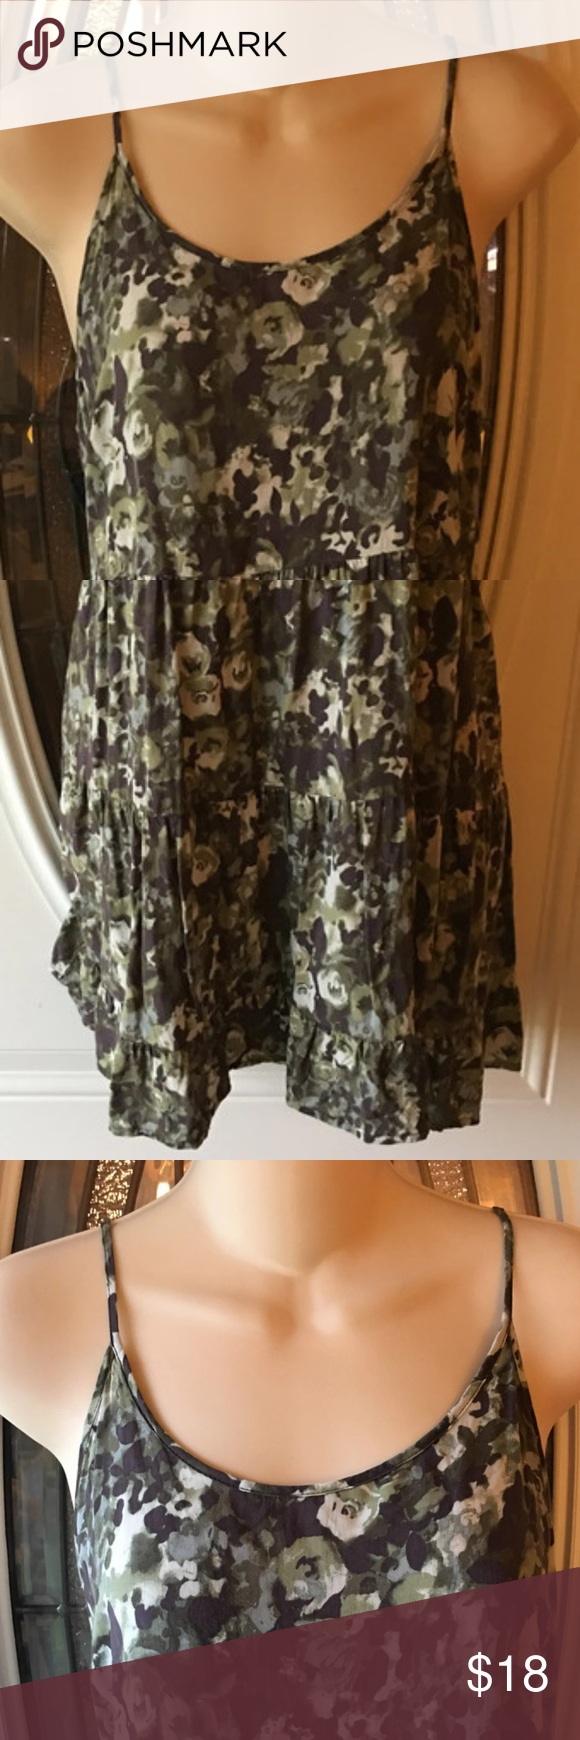 Maurices Green Floral SHORT Sundress Sz Small Maurices Green Floral SHORT Sundress Sz SmallAdjustable Straps Soft 100% rayon Measures 15.5 pit to pit (33 total) Length is 21 measured from center back Very good condition m st Maurices Dresses Mini #shortsundress